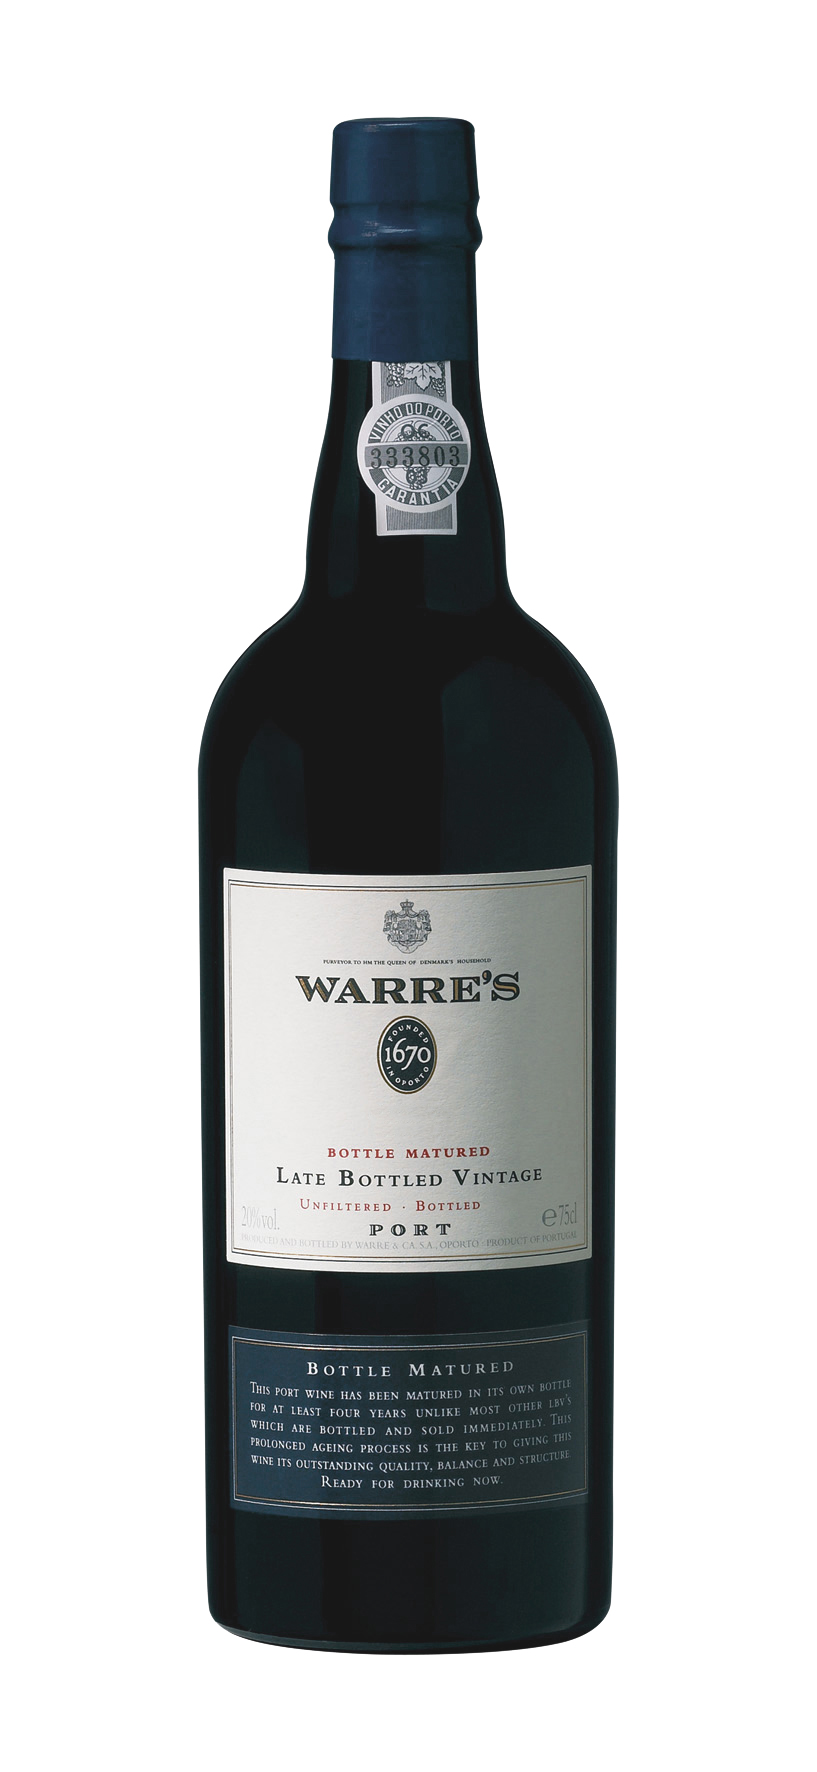 Warre's Late Bottle Vintage Bottle.jpg